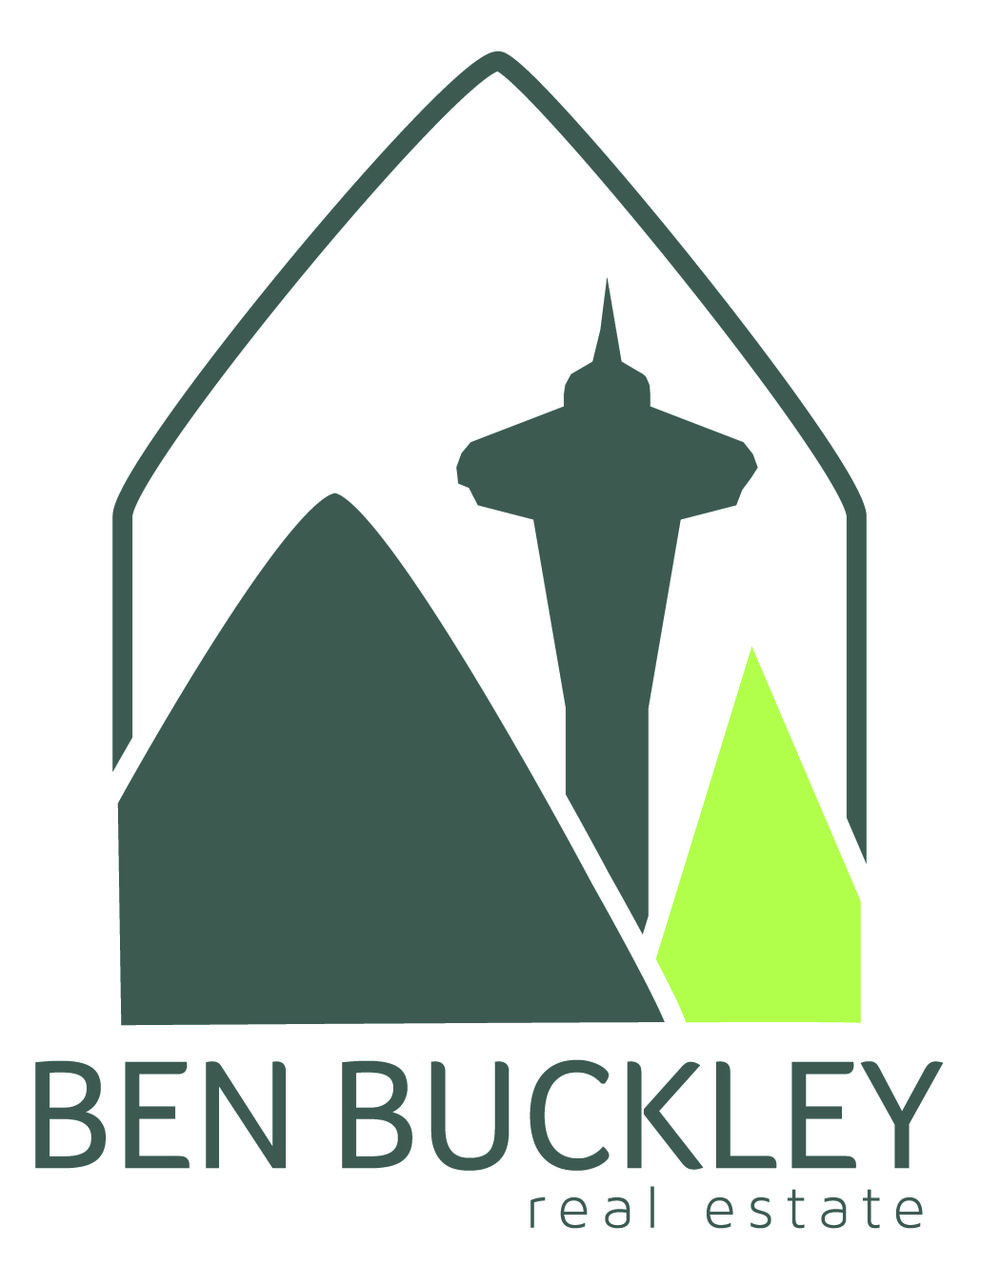 ben-buckley-logo-name-original.jpg